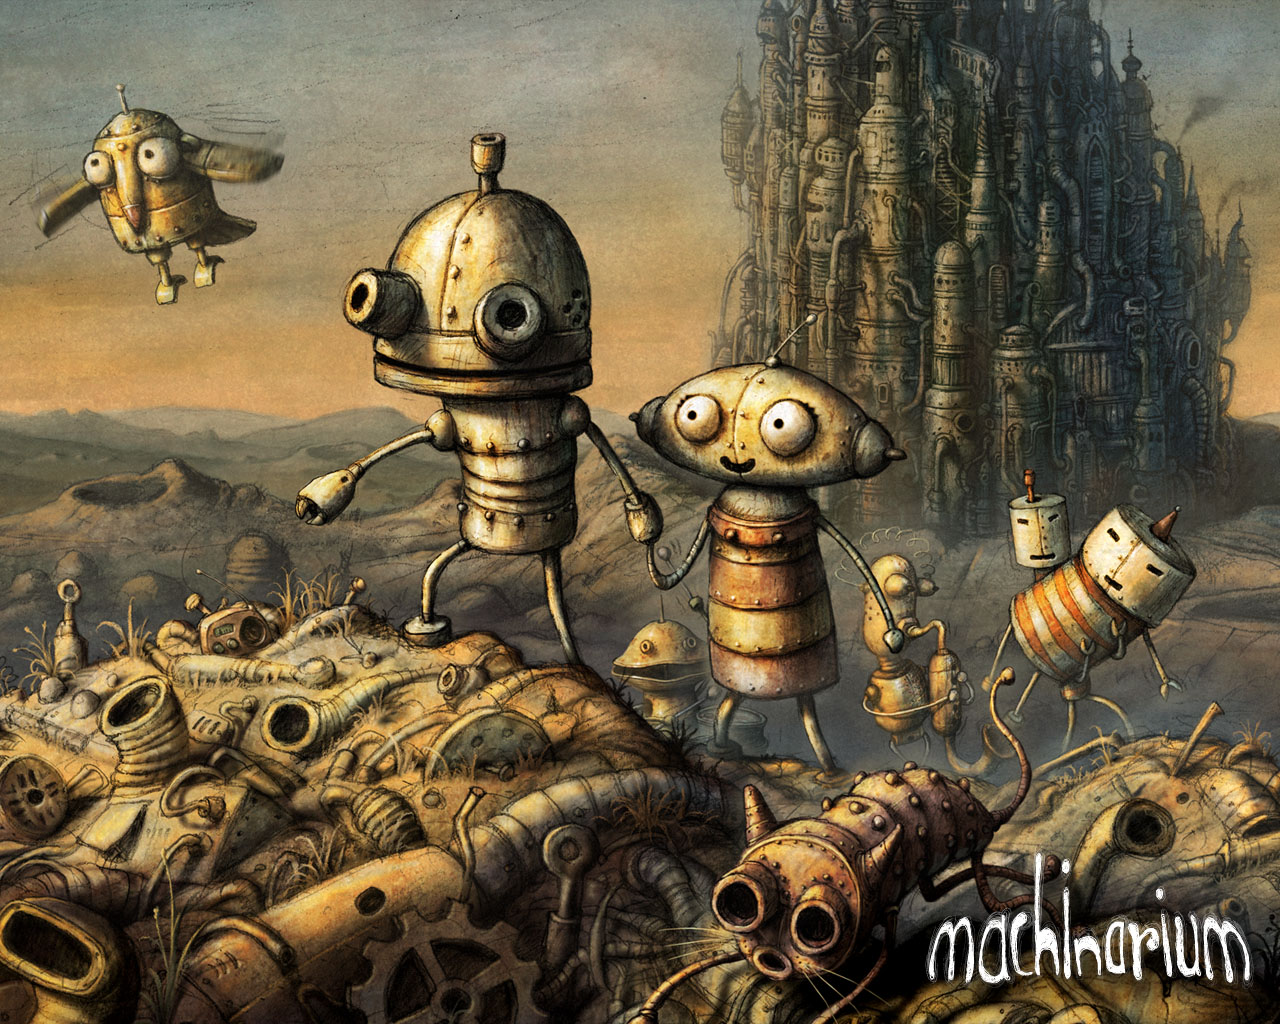 Amanita's Machinarium coming to EU PSN next month